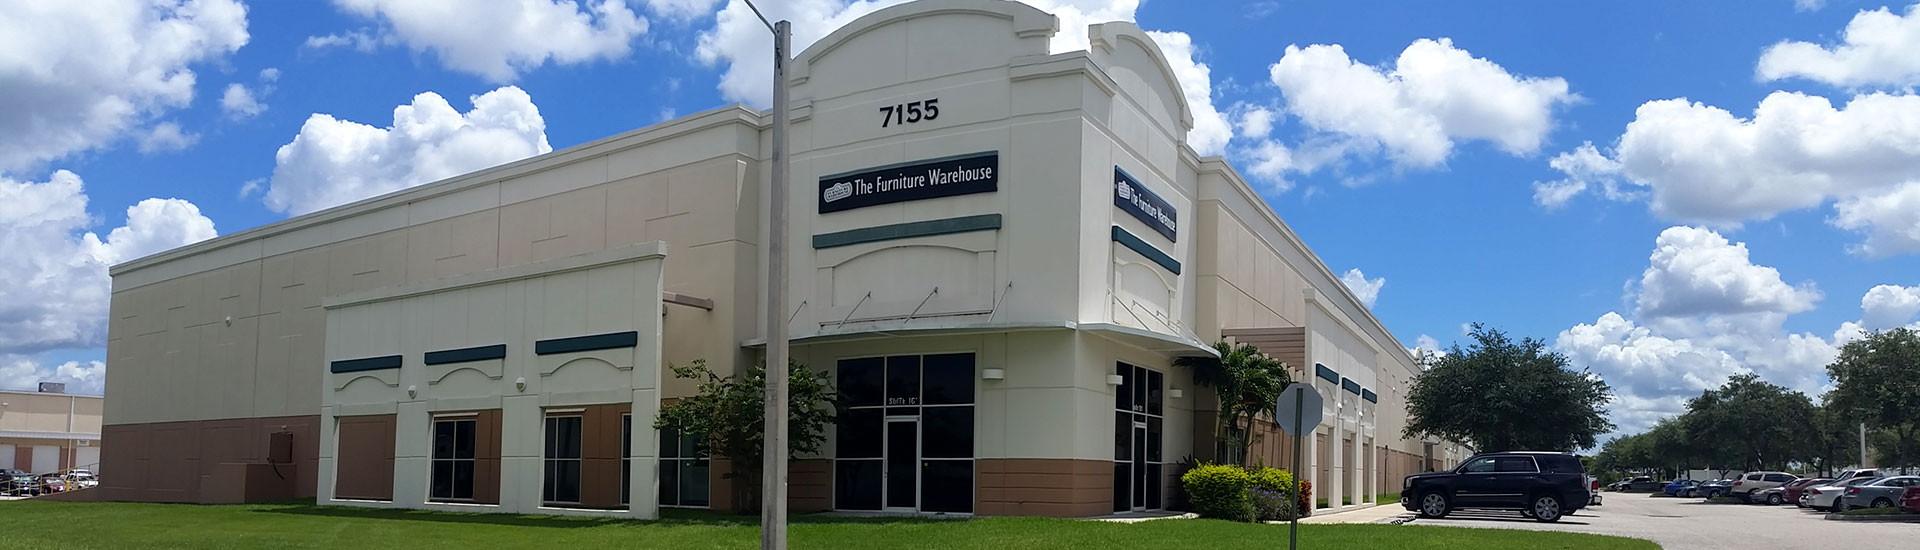 The Furniture Warehouse - Corporate Office and Pickup Location